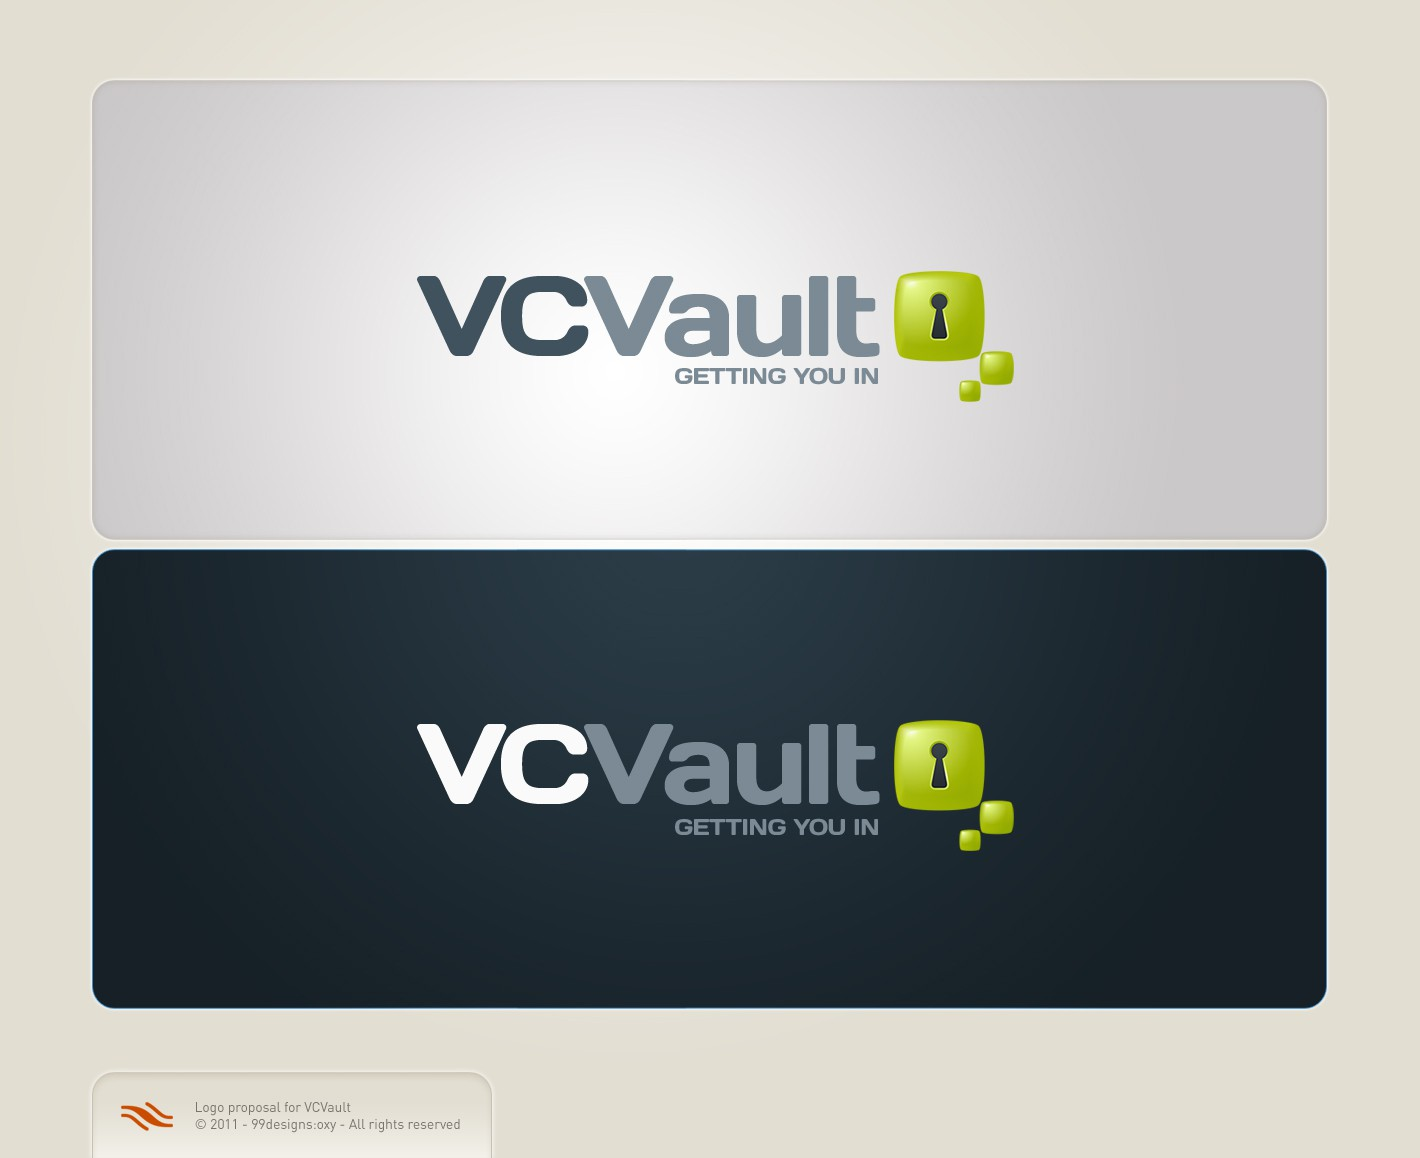 Create the next logo for VCVault